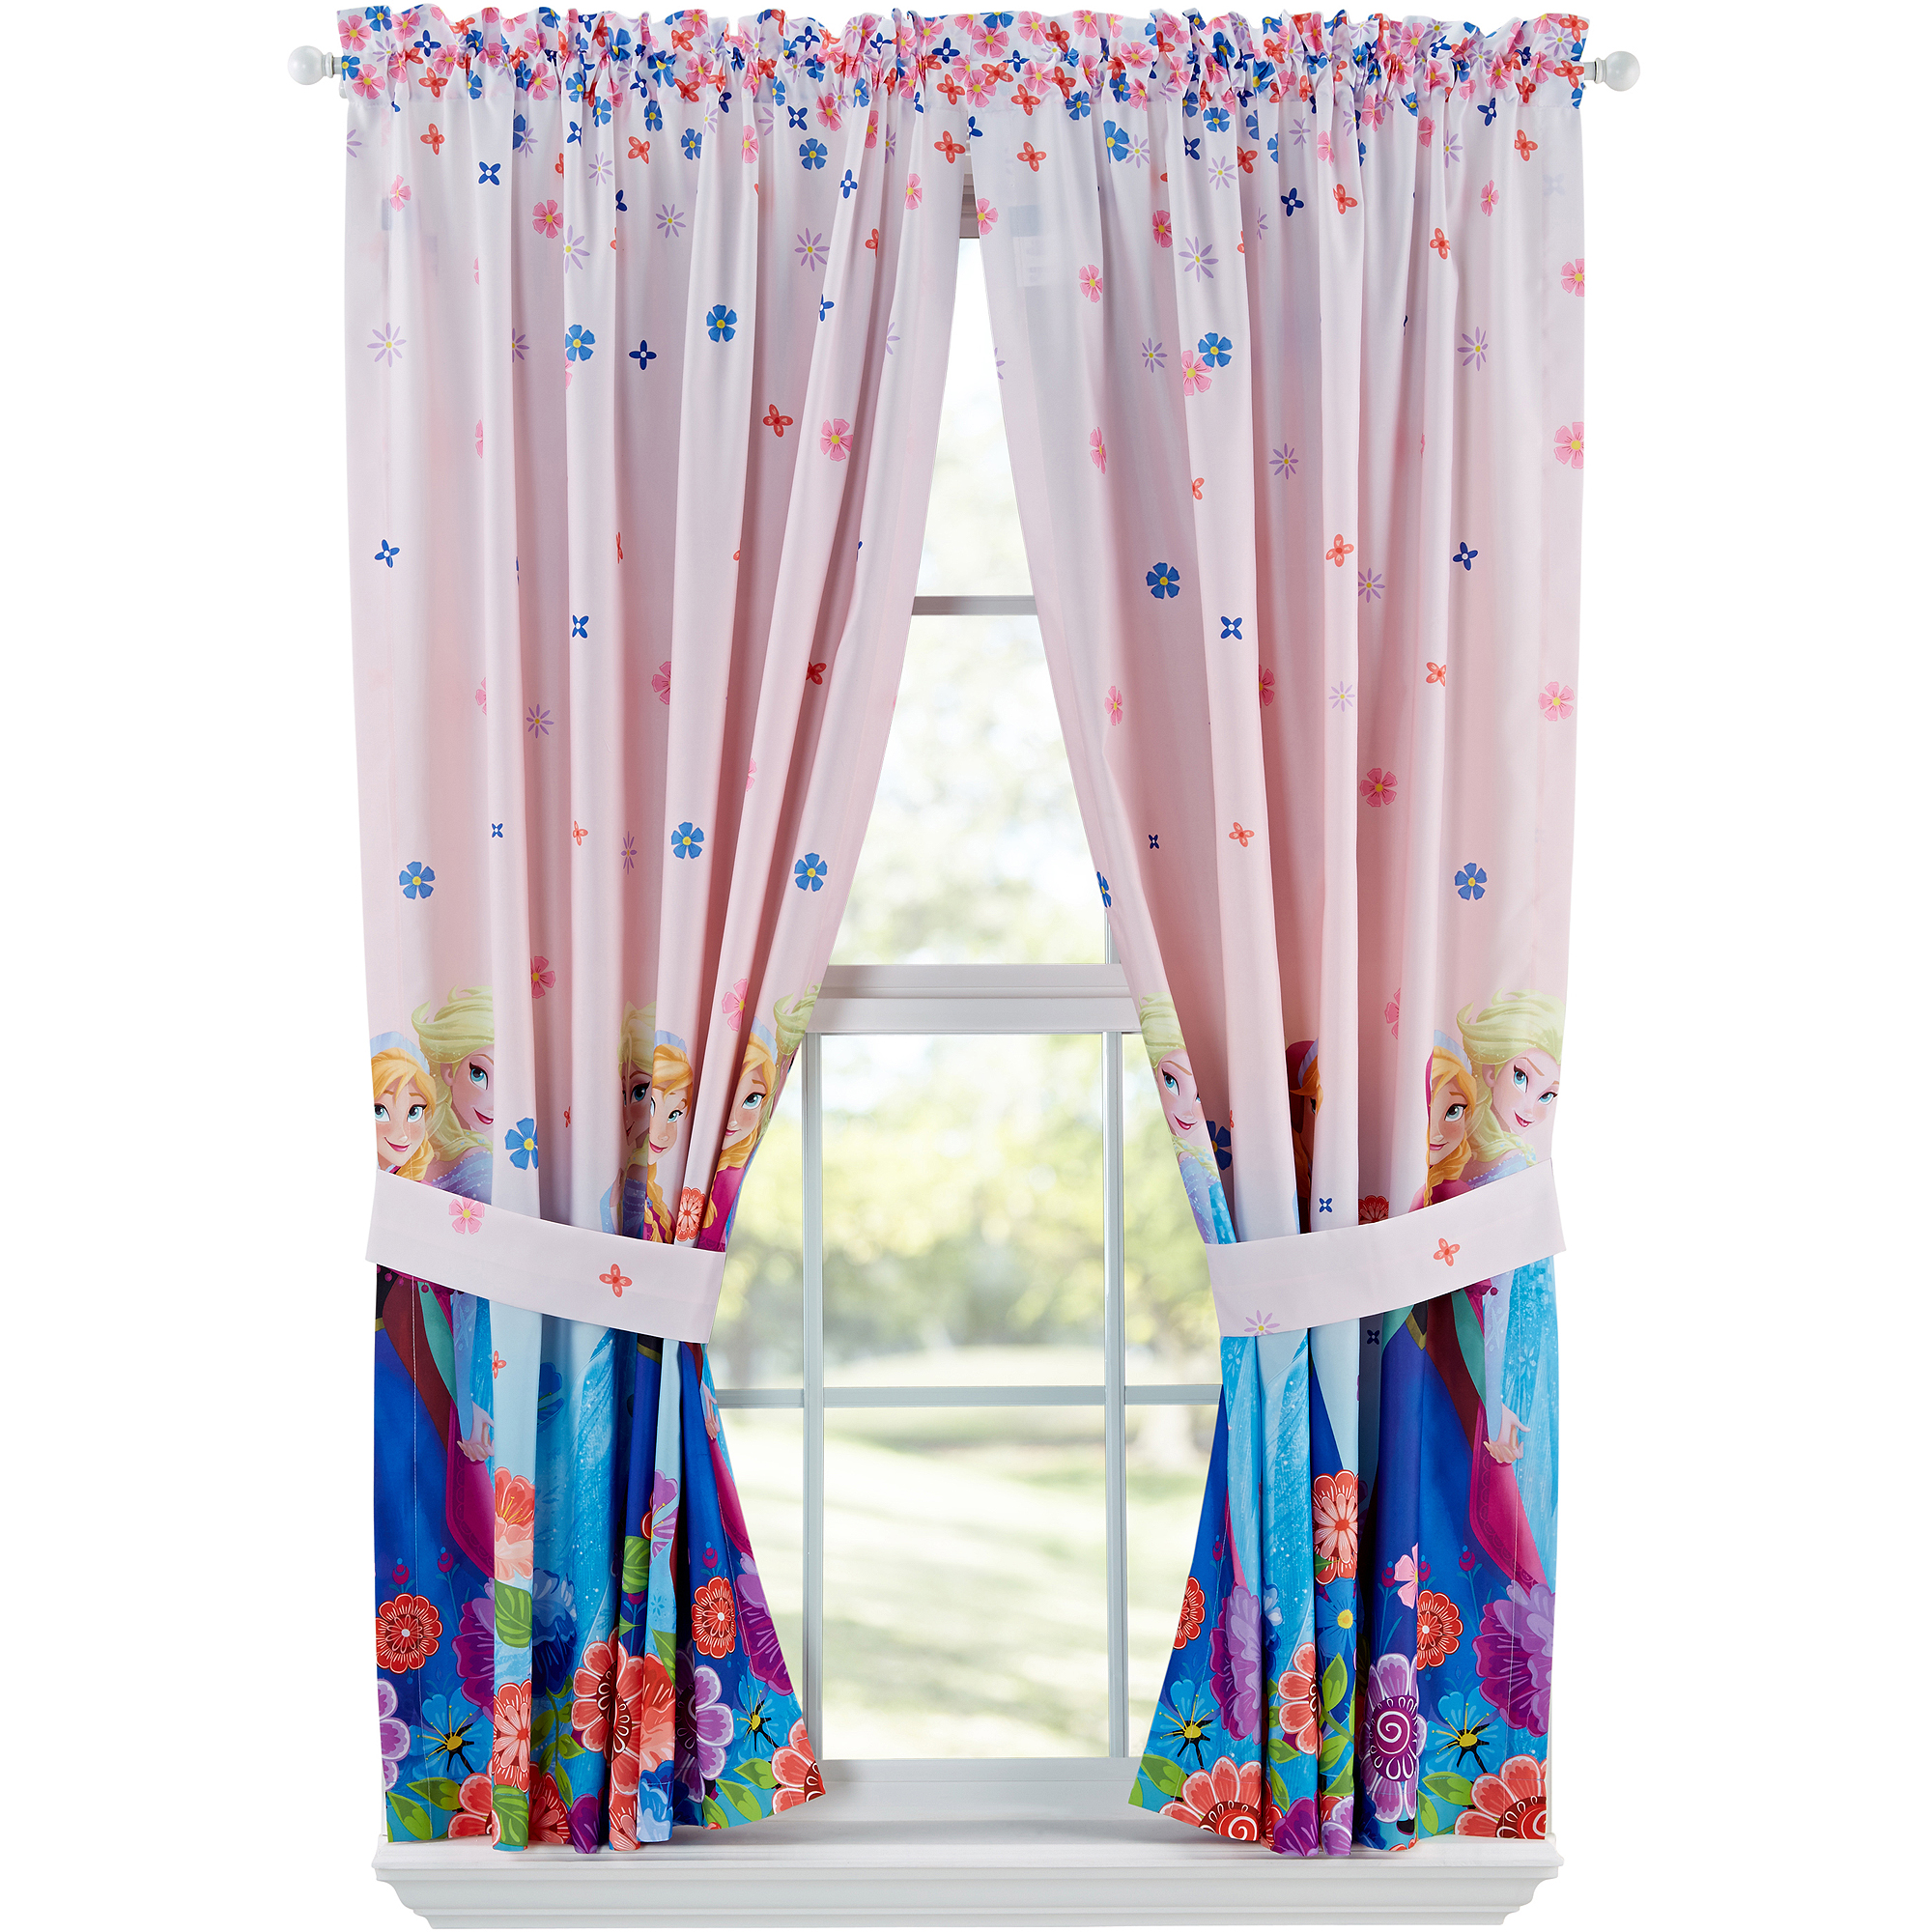 Disney's Frozen Breeze Into Spring Window Panels, Set of 2, Pink